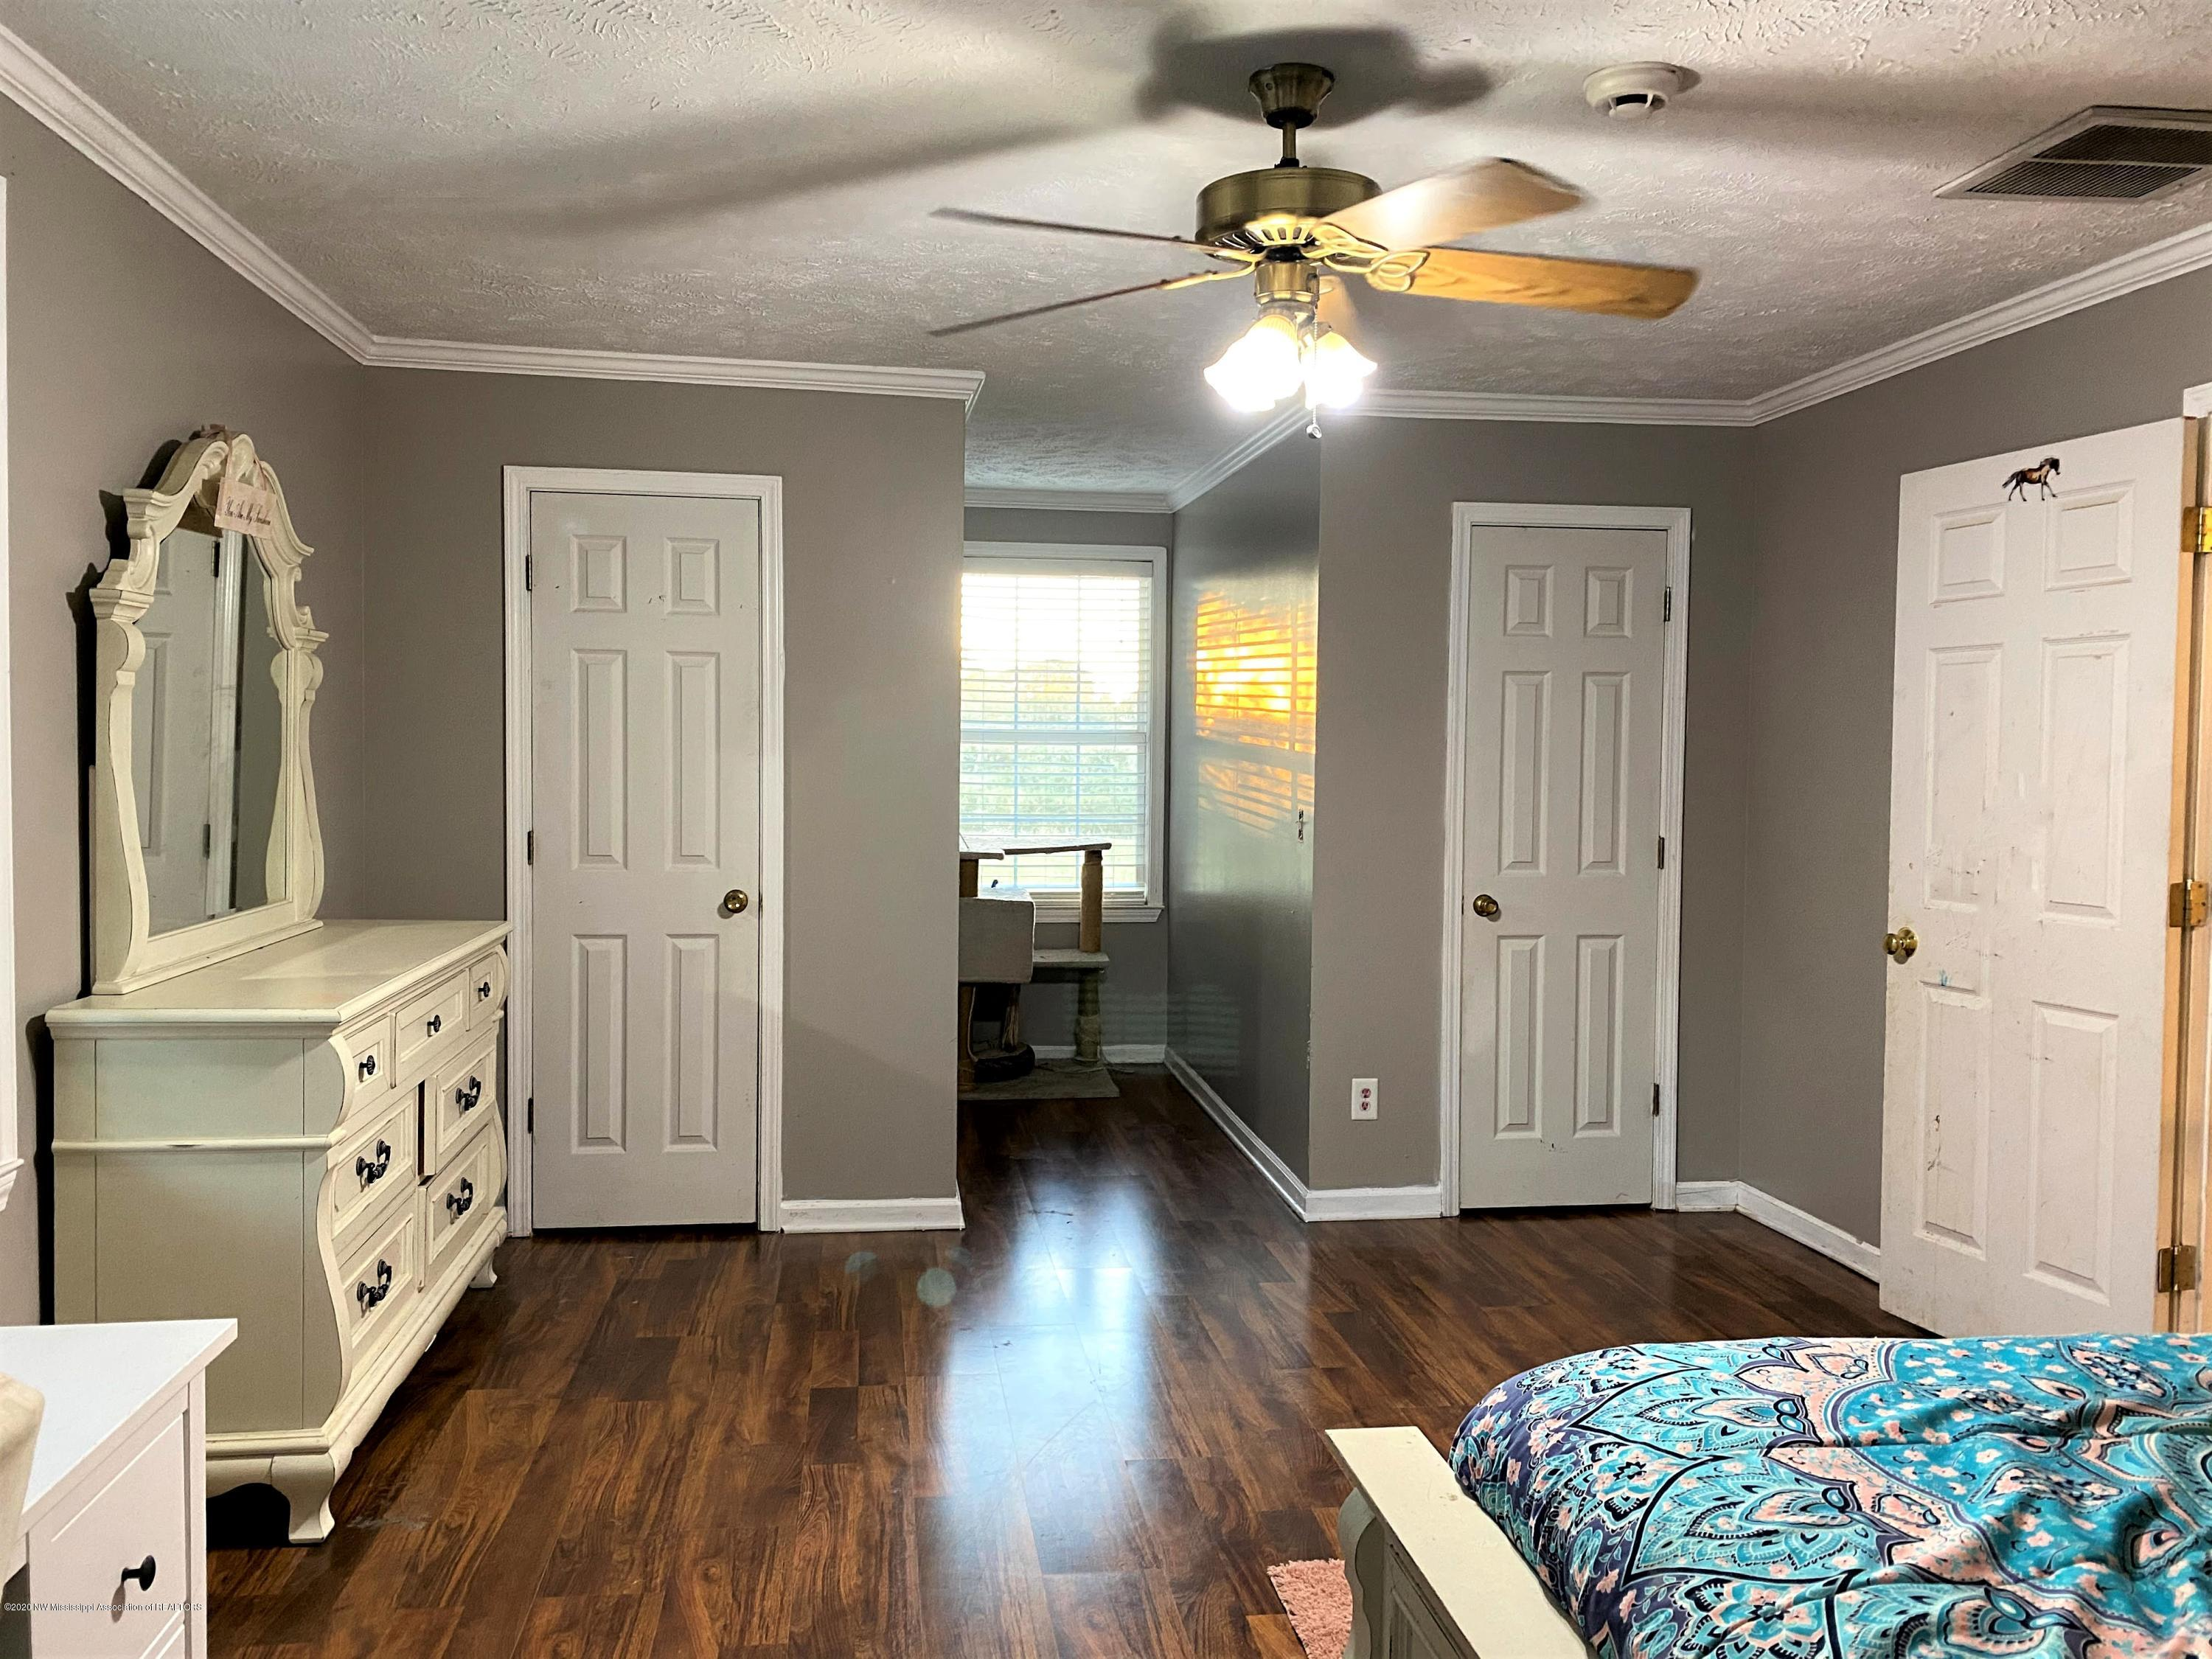 64 Bryson Road, Benton, Mississippi 38647, 4 Bedrooms Bedrooms, ,4 BathroomsBathrooms,Residential,For Sale,Bryson,331985